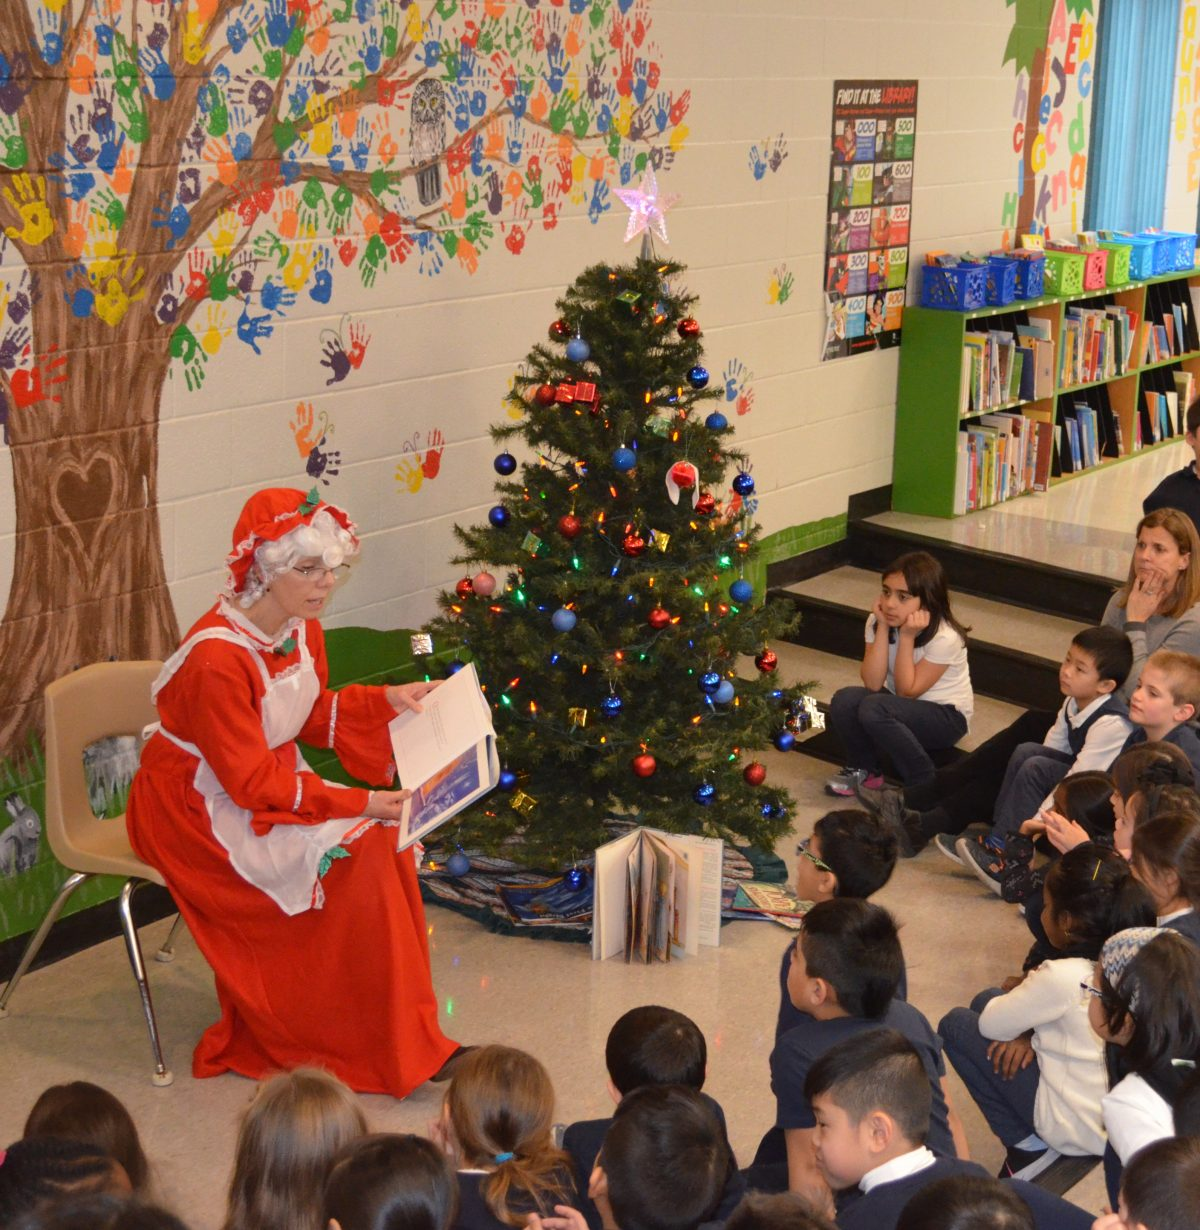 Storytime with Mrs. Clause